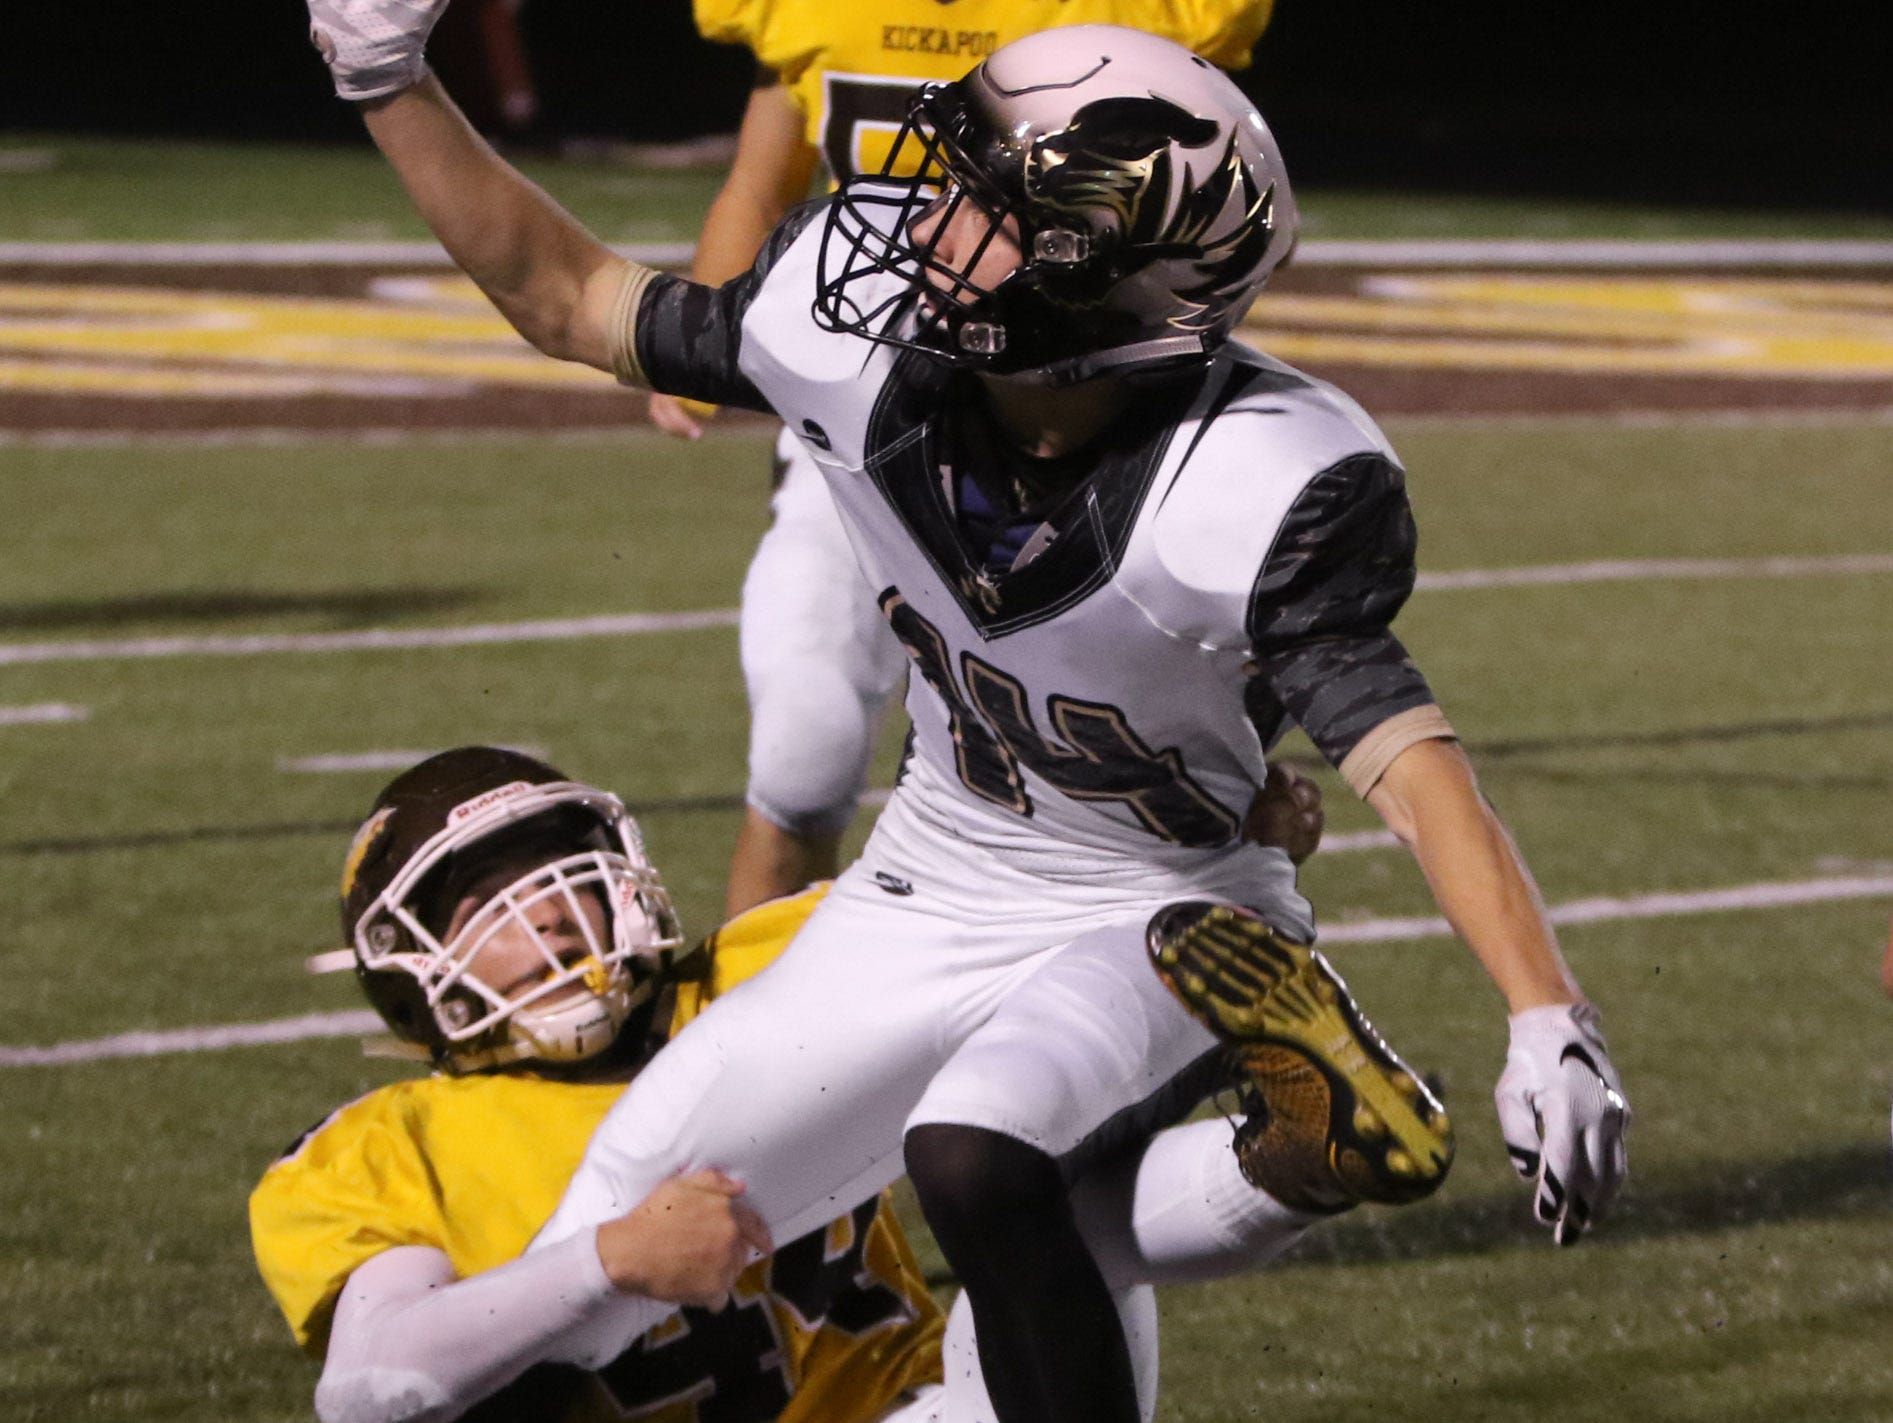 Kickapoo High School linebacker Tre Woodring forces a turnover in the second half against Lee's Summit High School Friday, October 23, 2015. Jason Connel / For the News-Leader